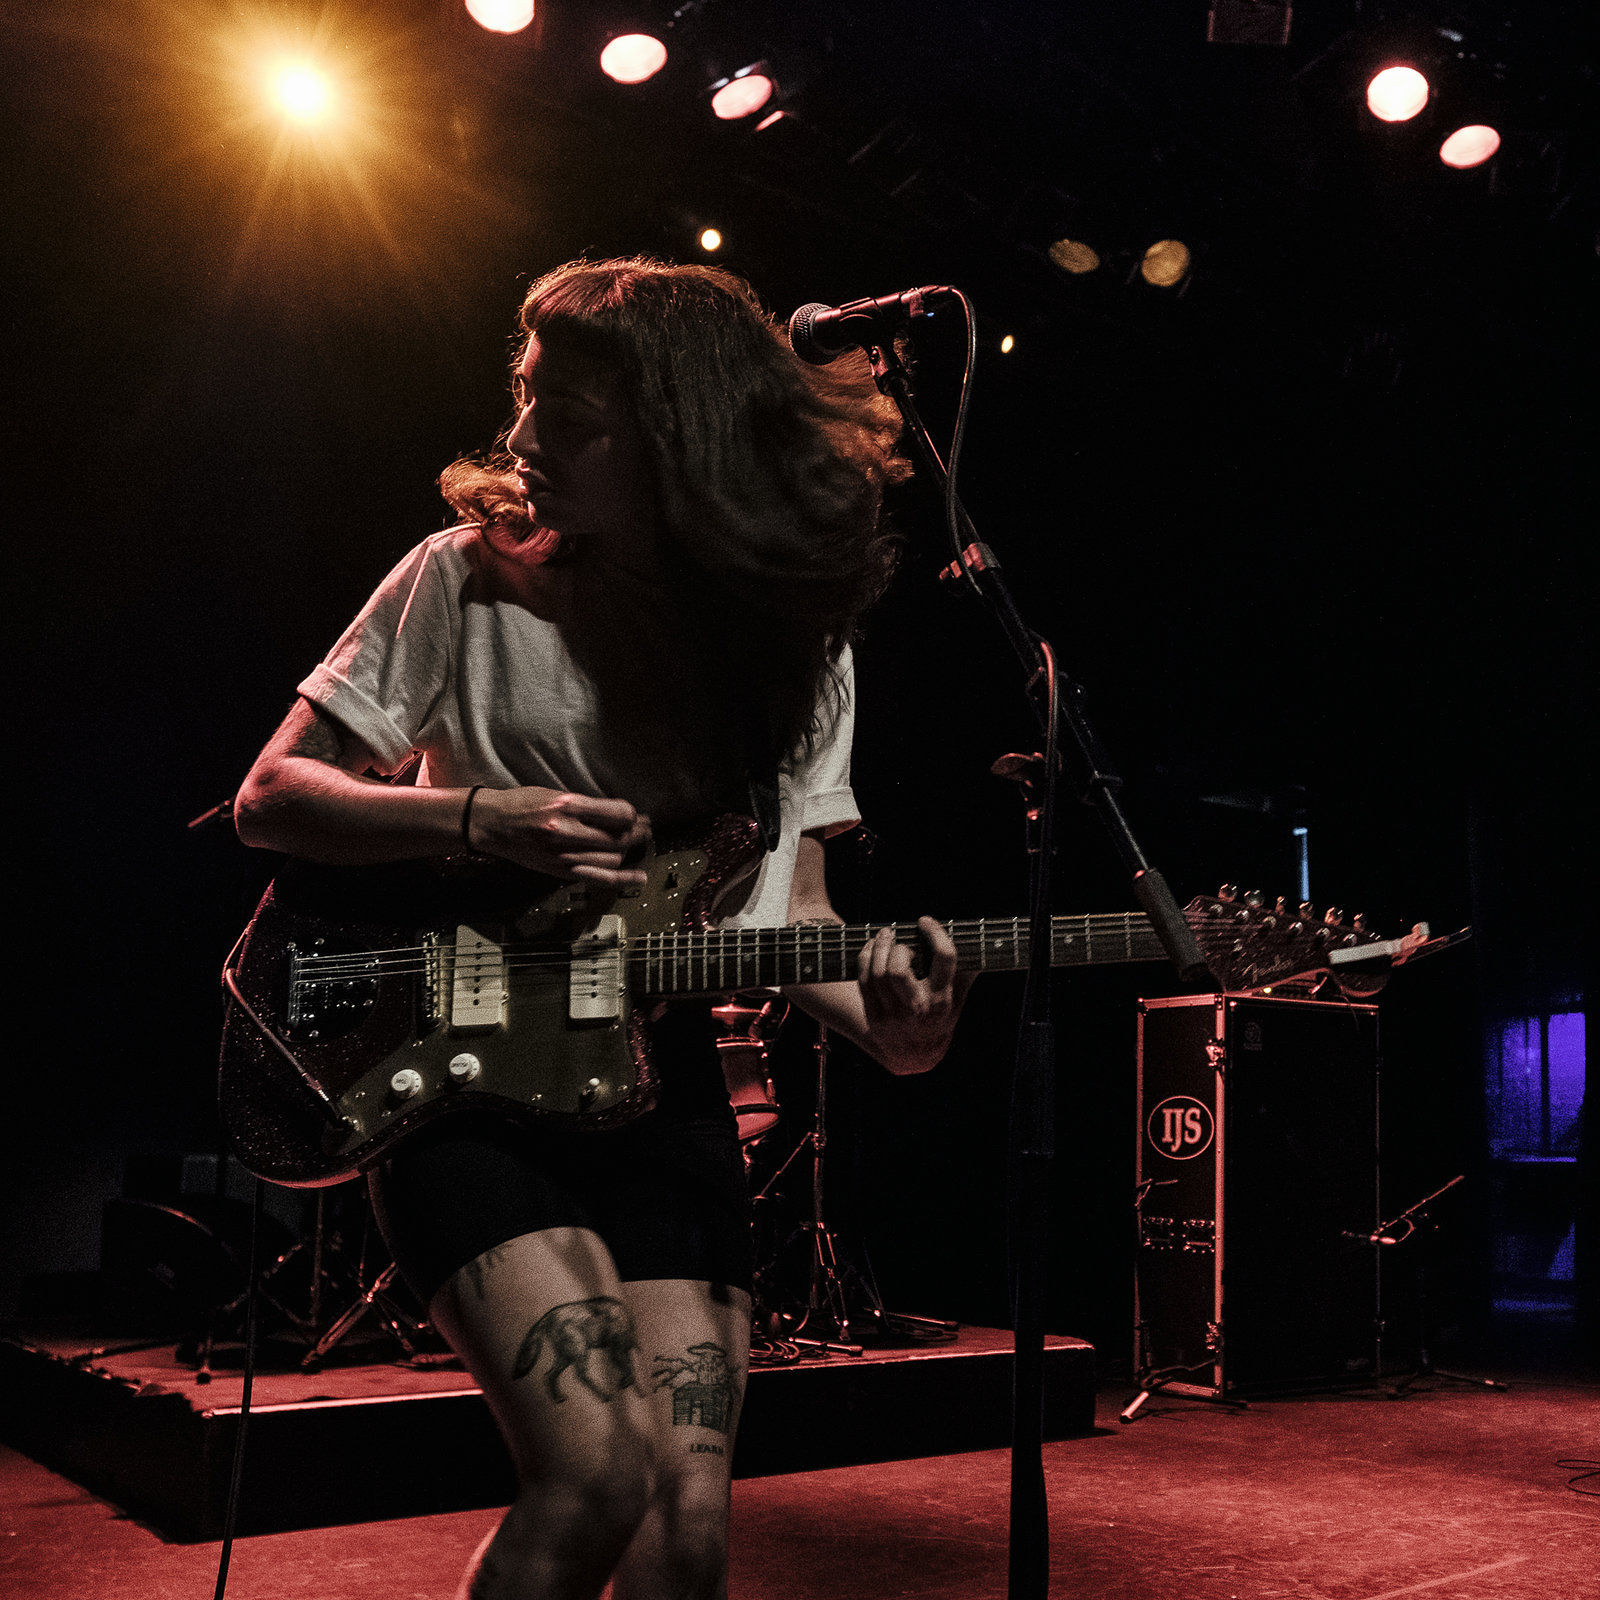 Camp Cope - March 2018